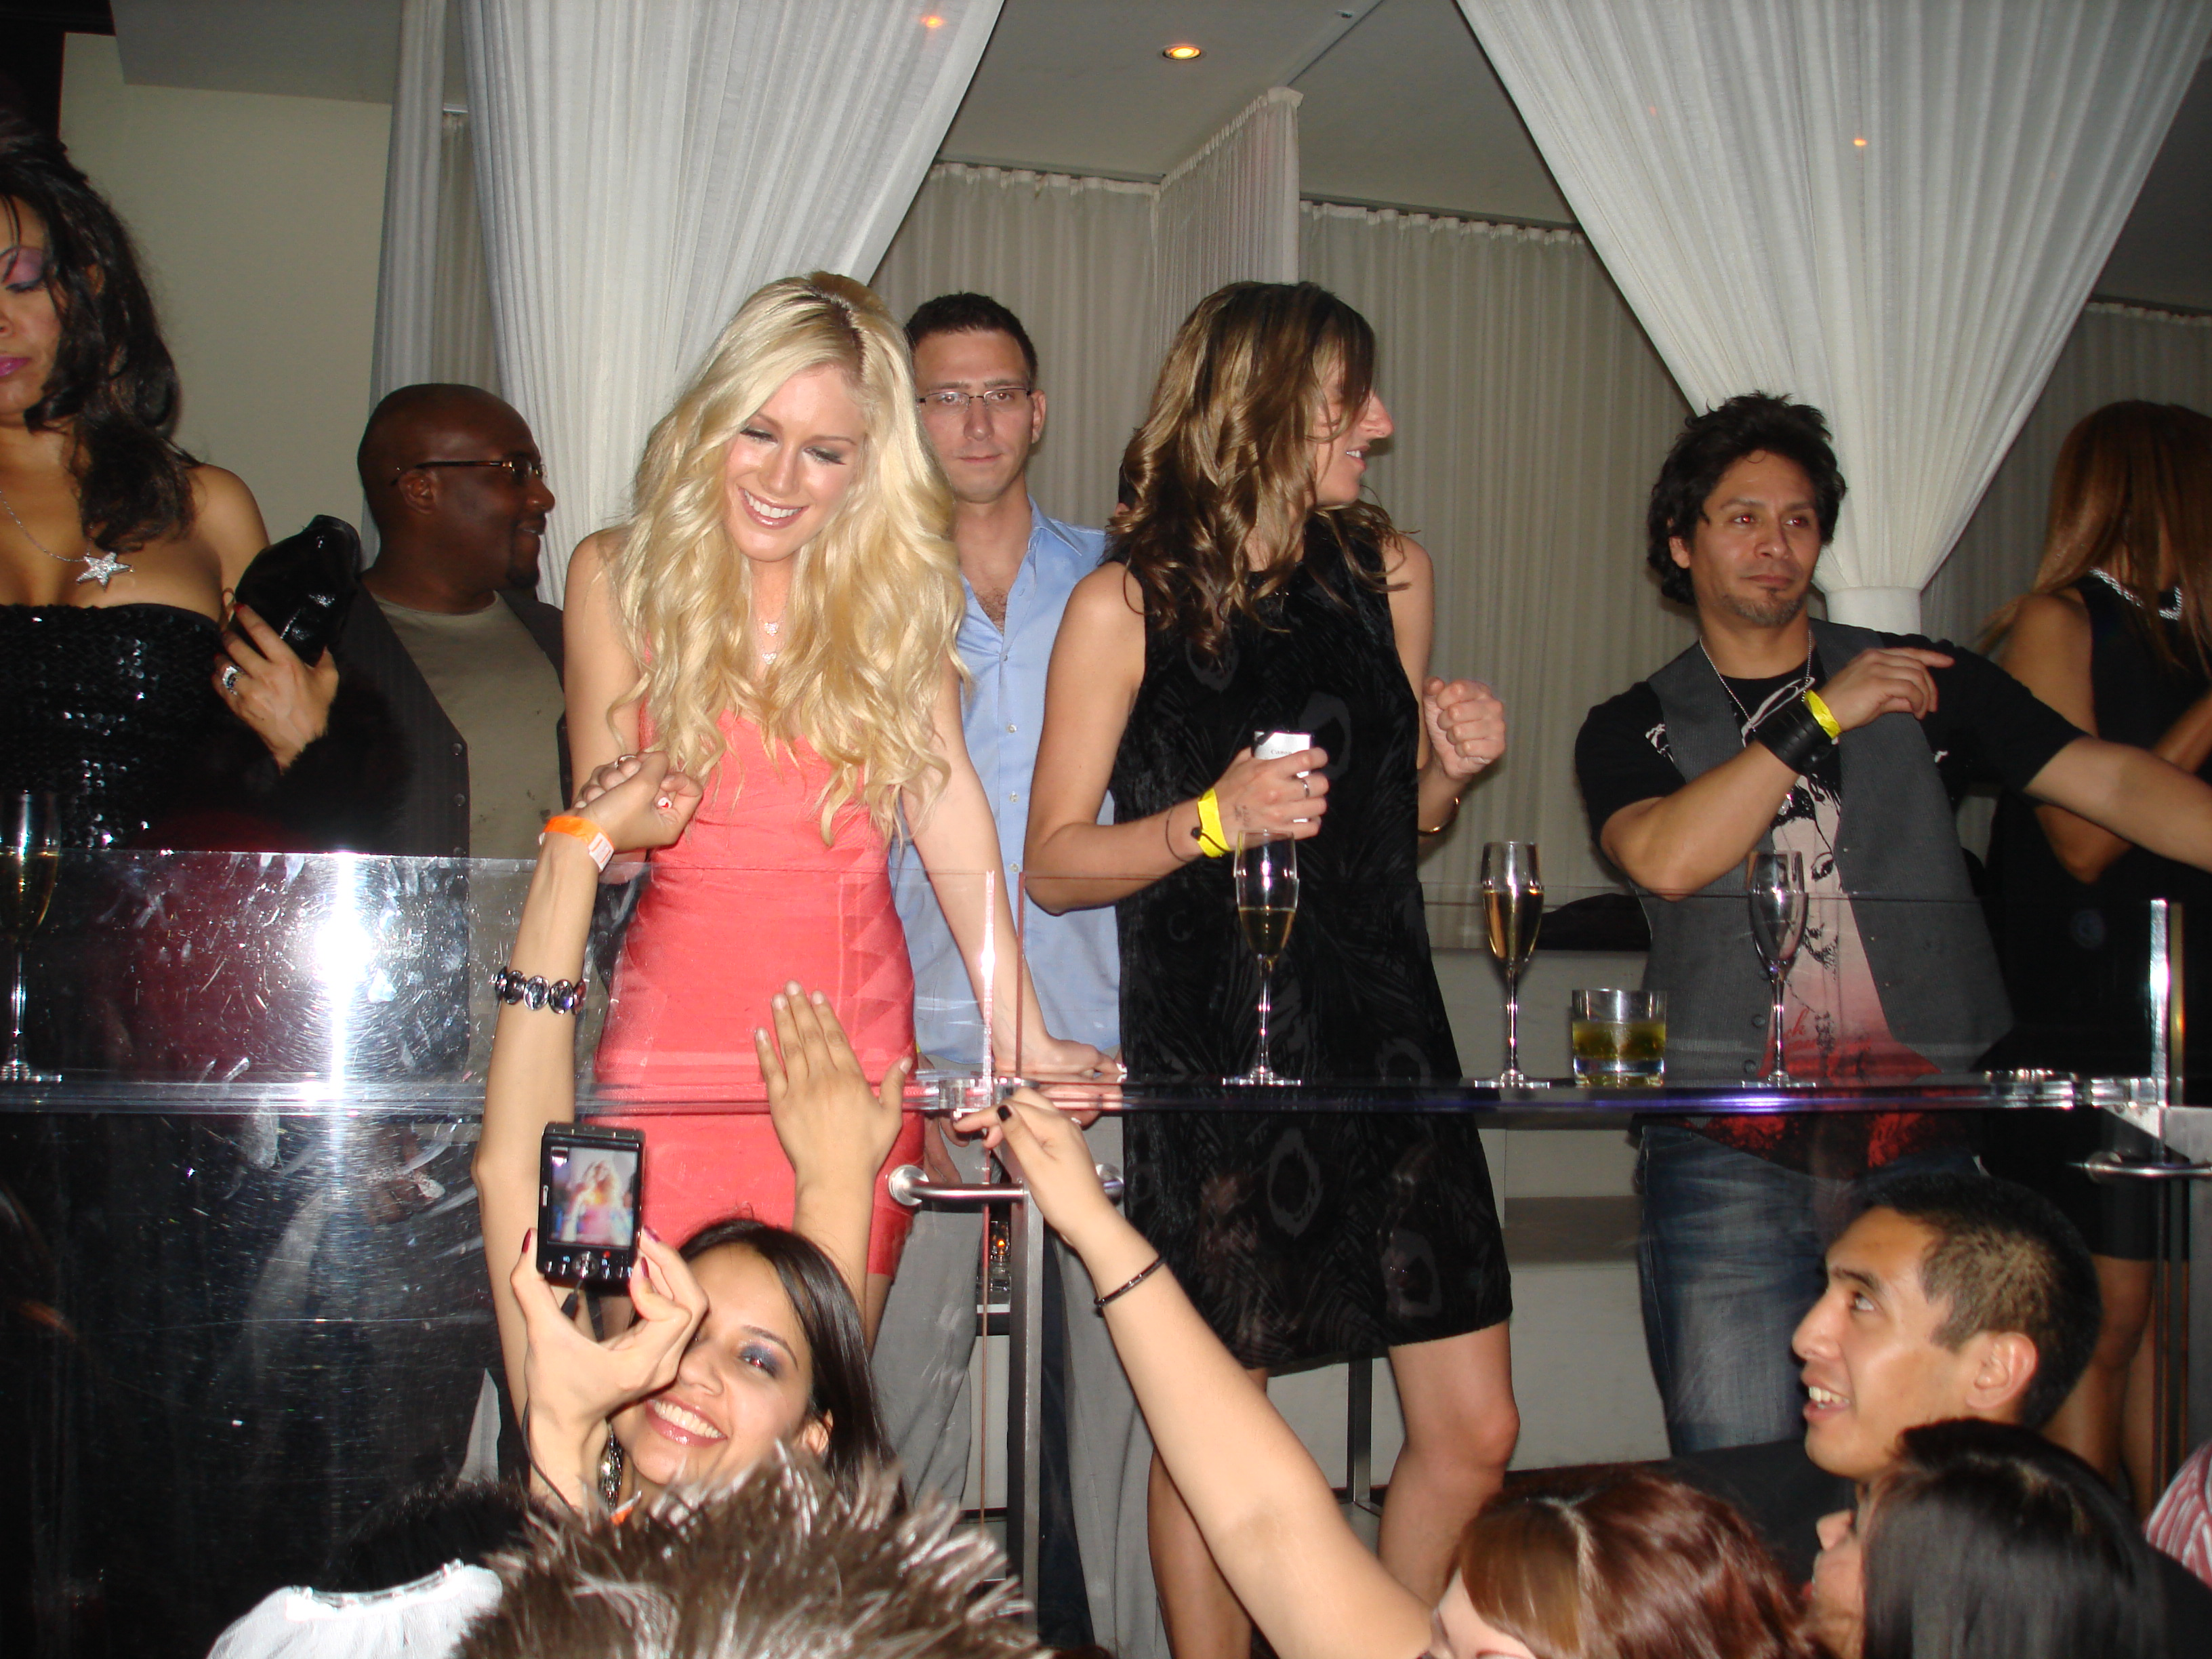 Heidi Montag of The Hills